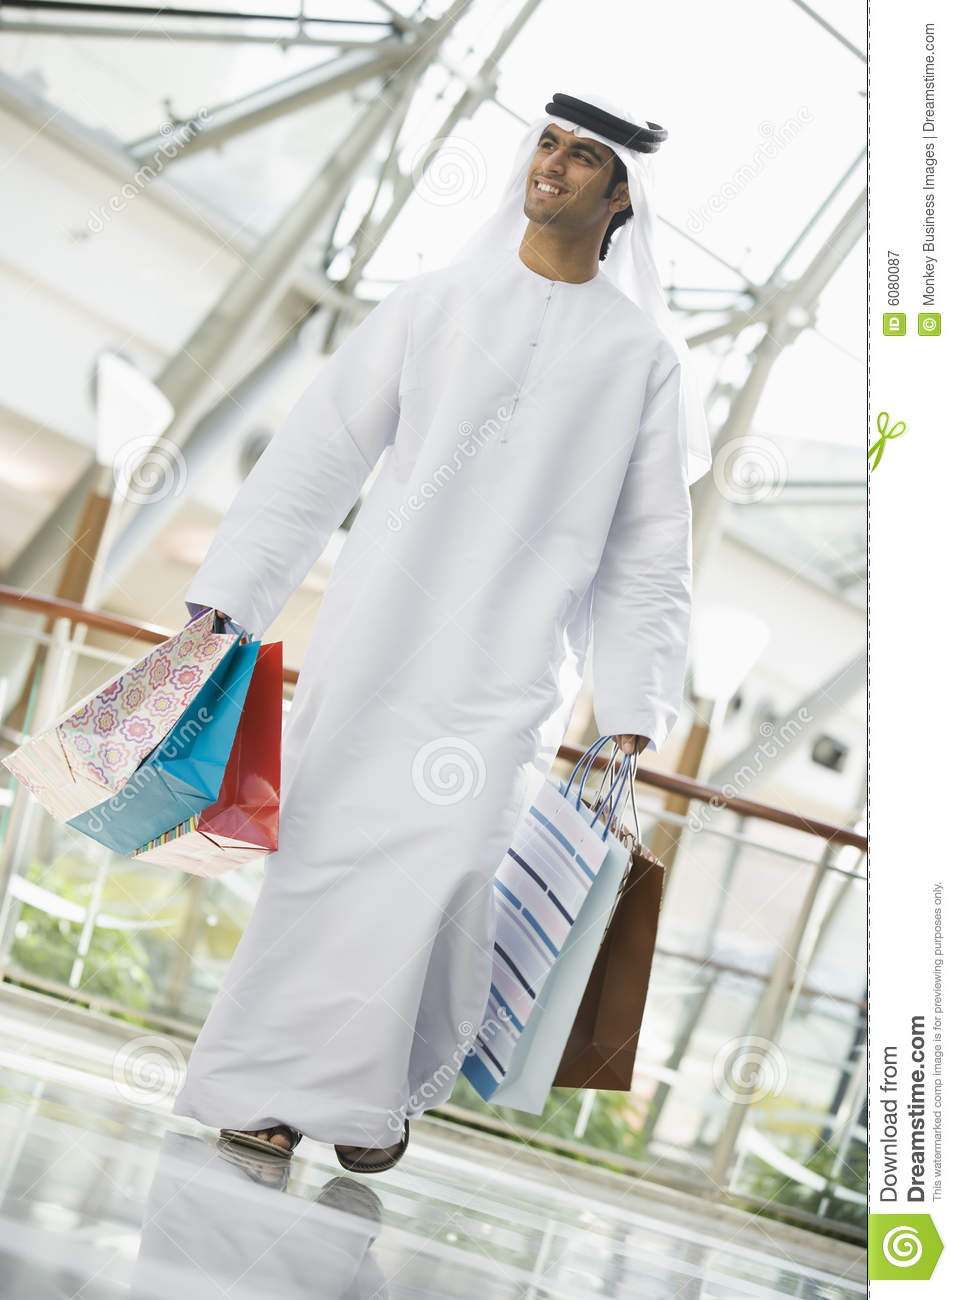 A Middle Eastern man in a shopping mall